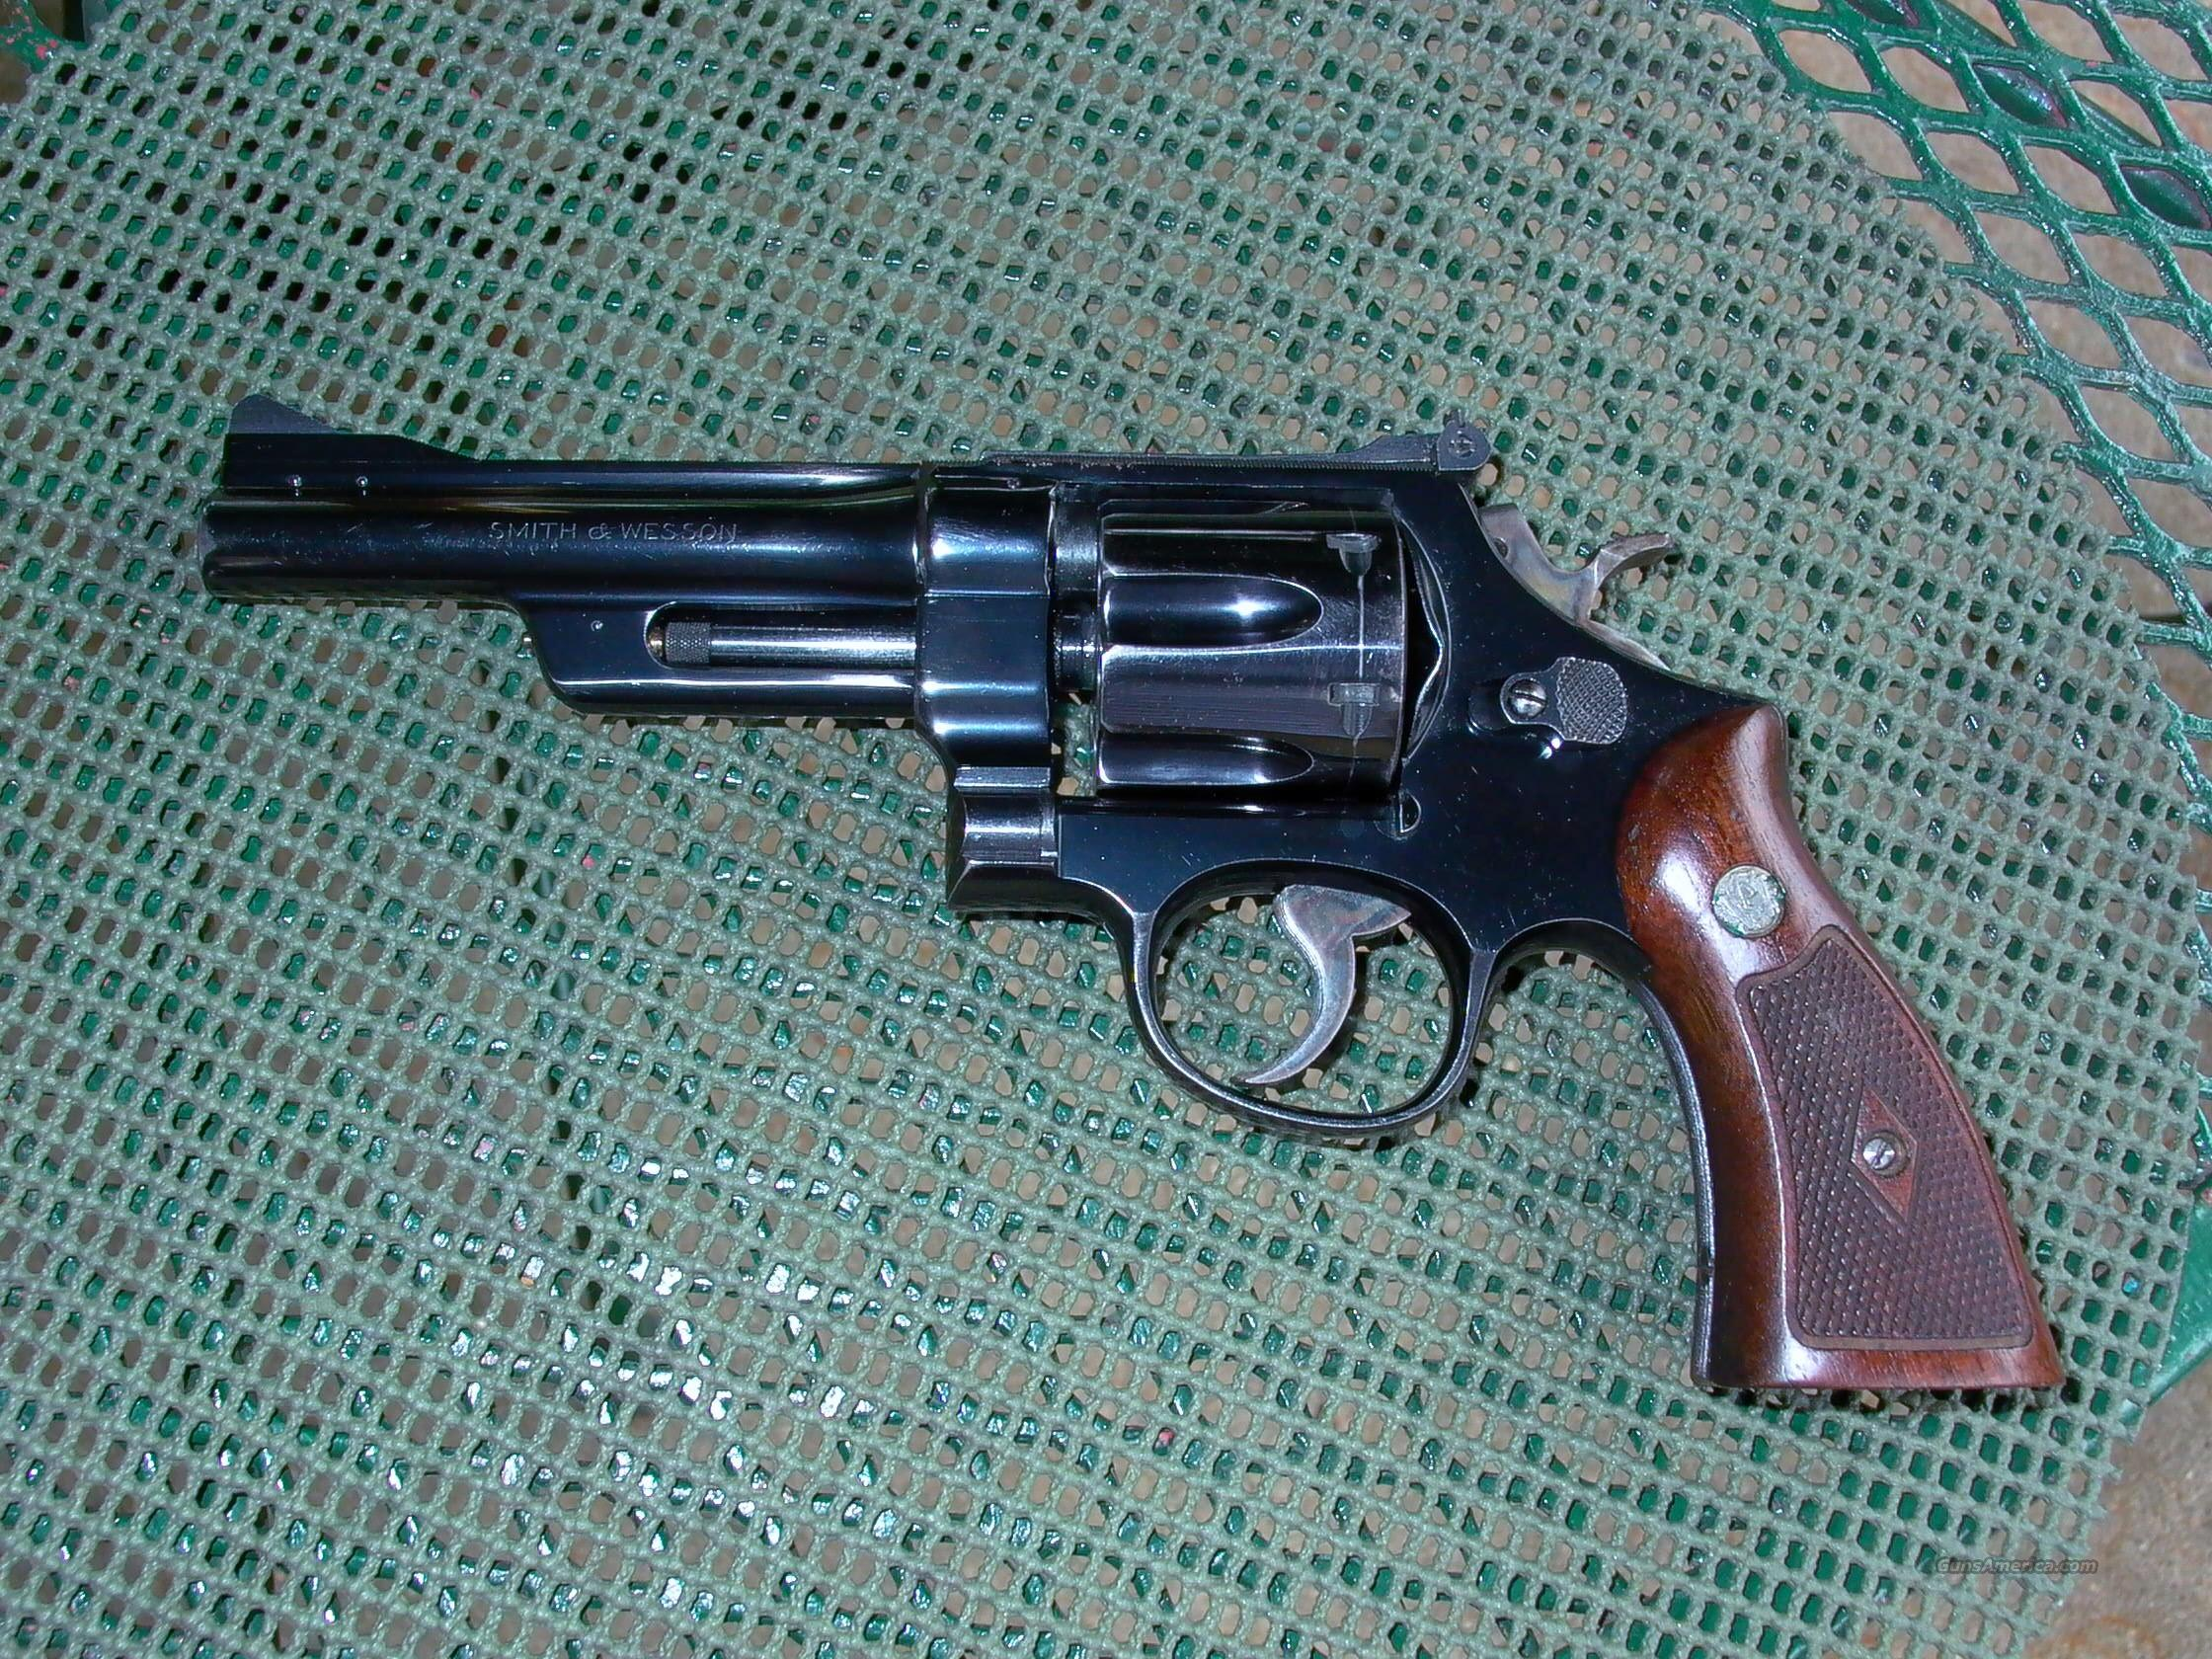 PRE MODEL 27 5 INCH 357 MAGNUM  Guns > Pistols > Smith & Wesson Revolvers > Full Frame Revolver